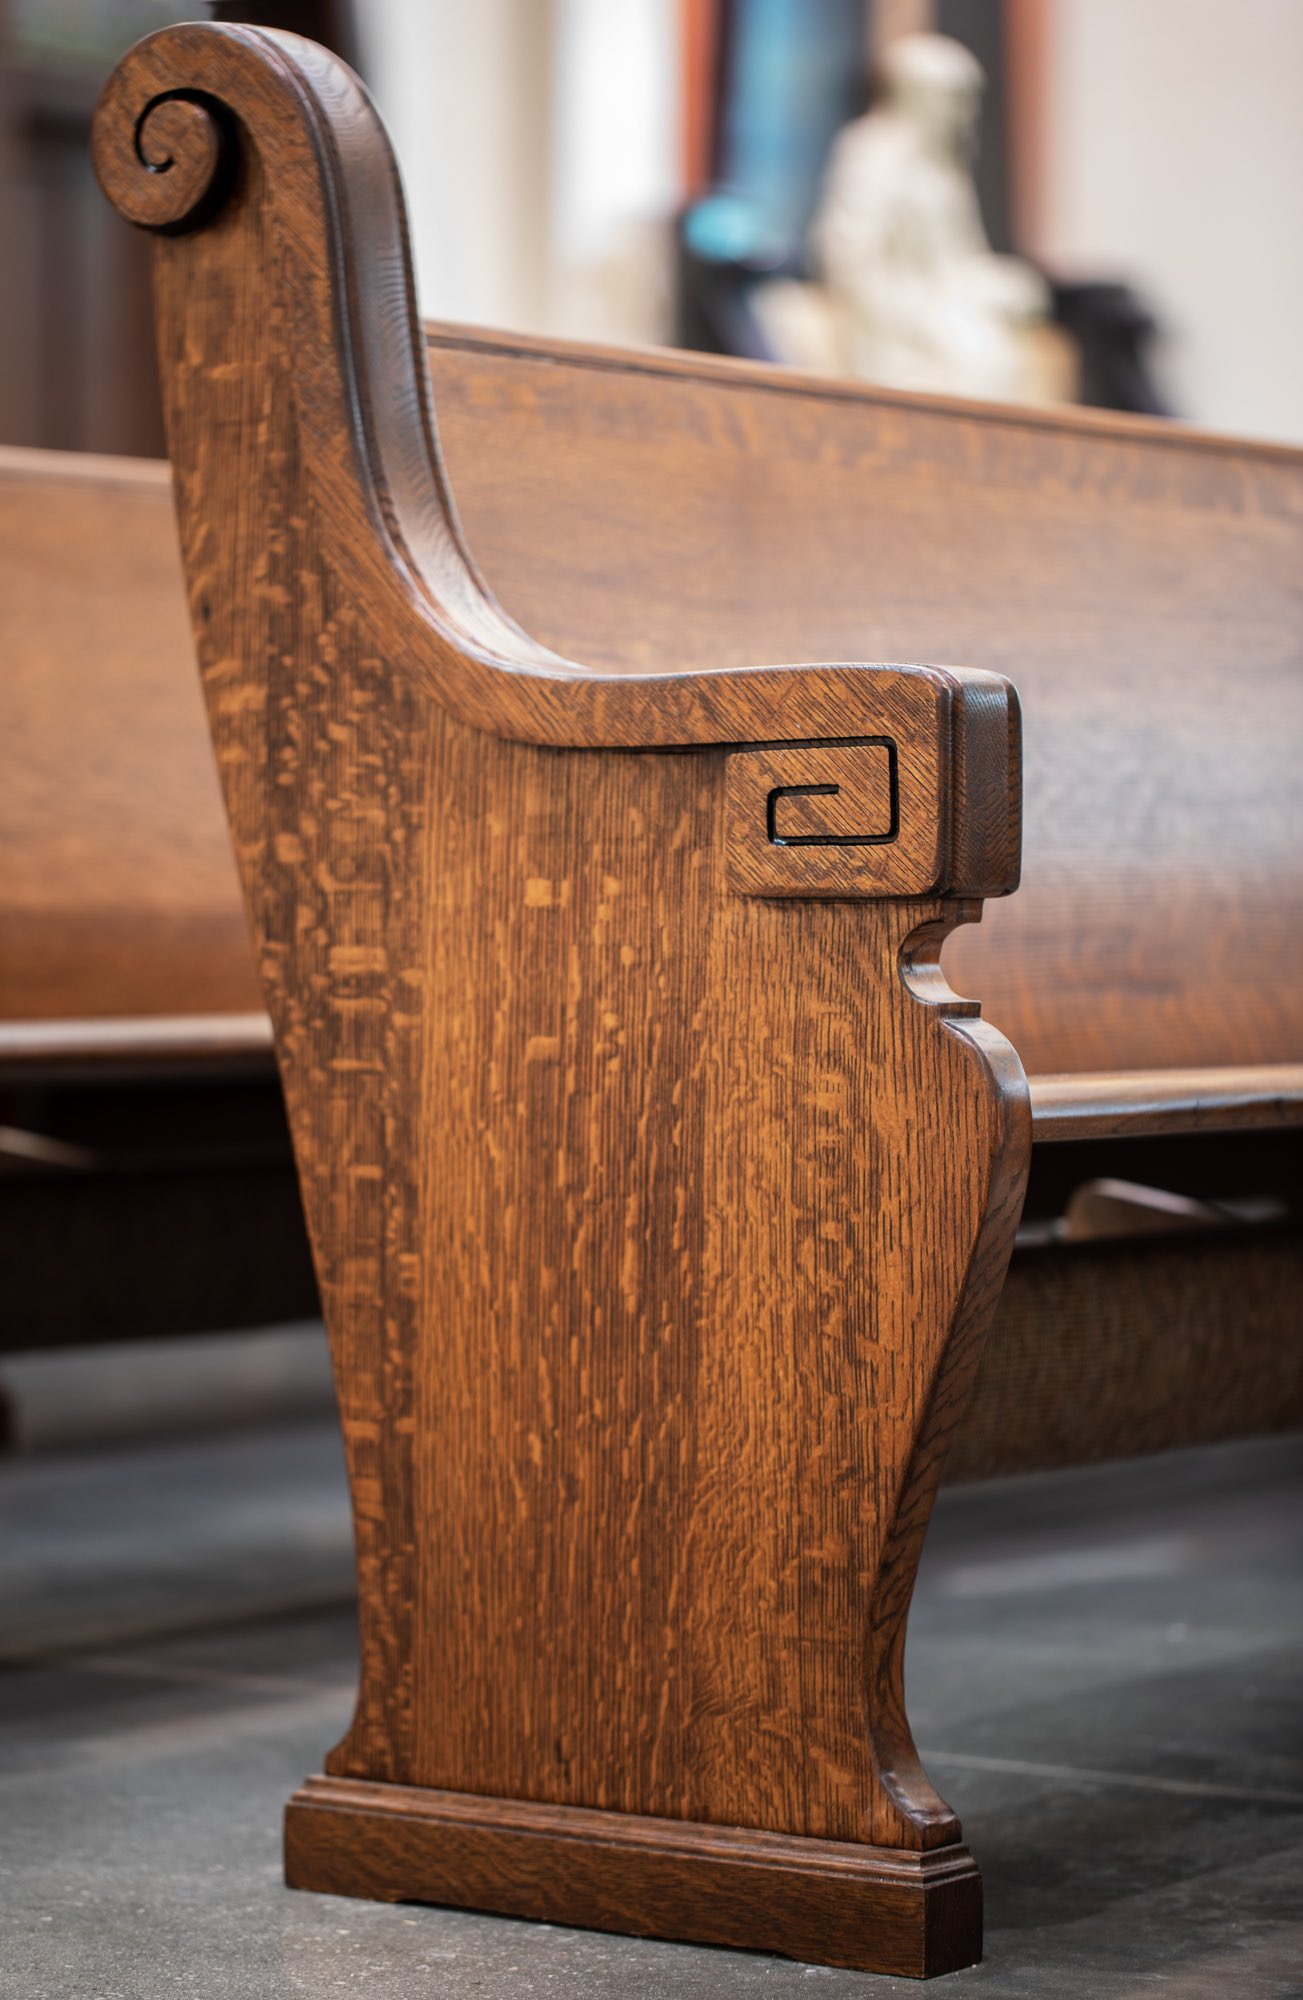 Sculptural wooden pews with carved scrolls mahogany arms and kneelers architect of record Harrison Design